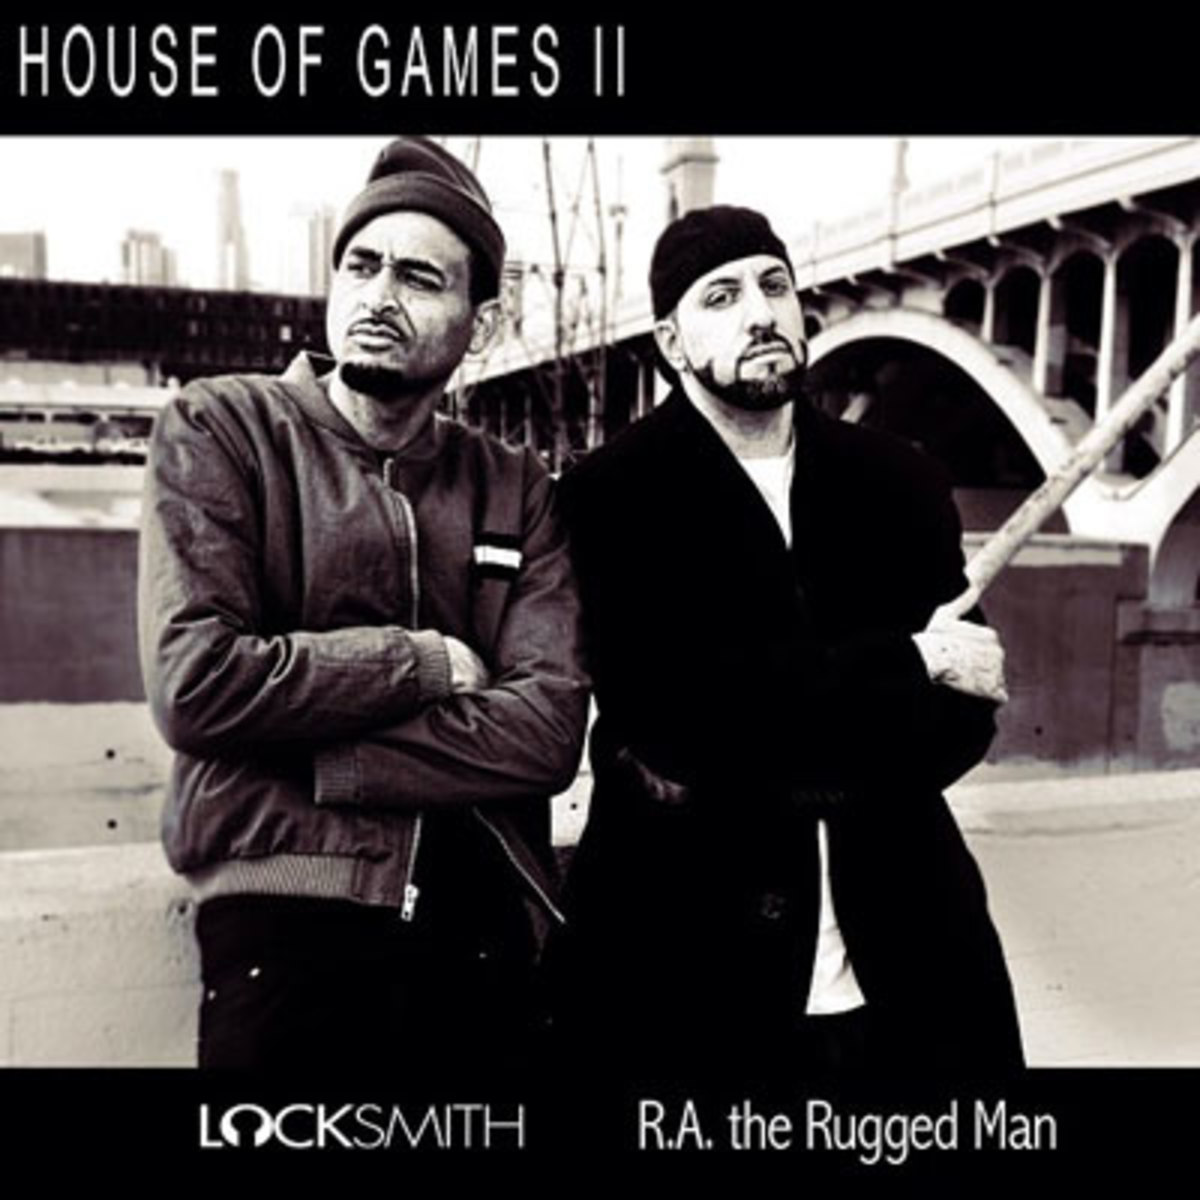 locksmith-houseofgames2.jpg